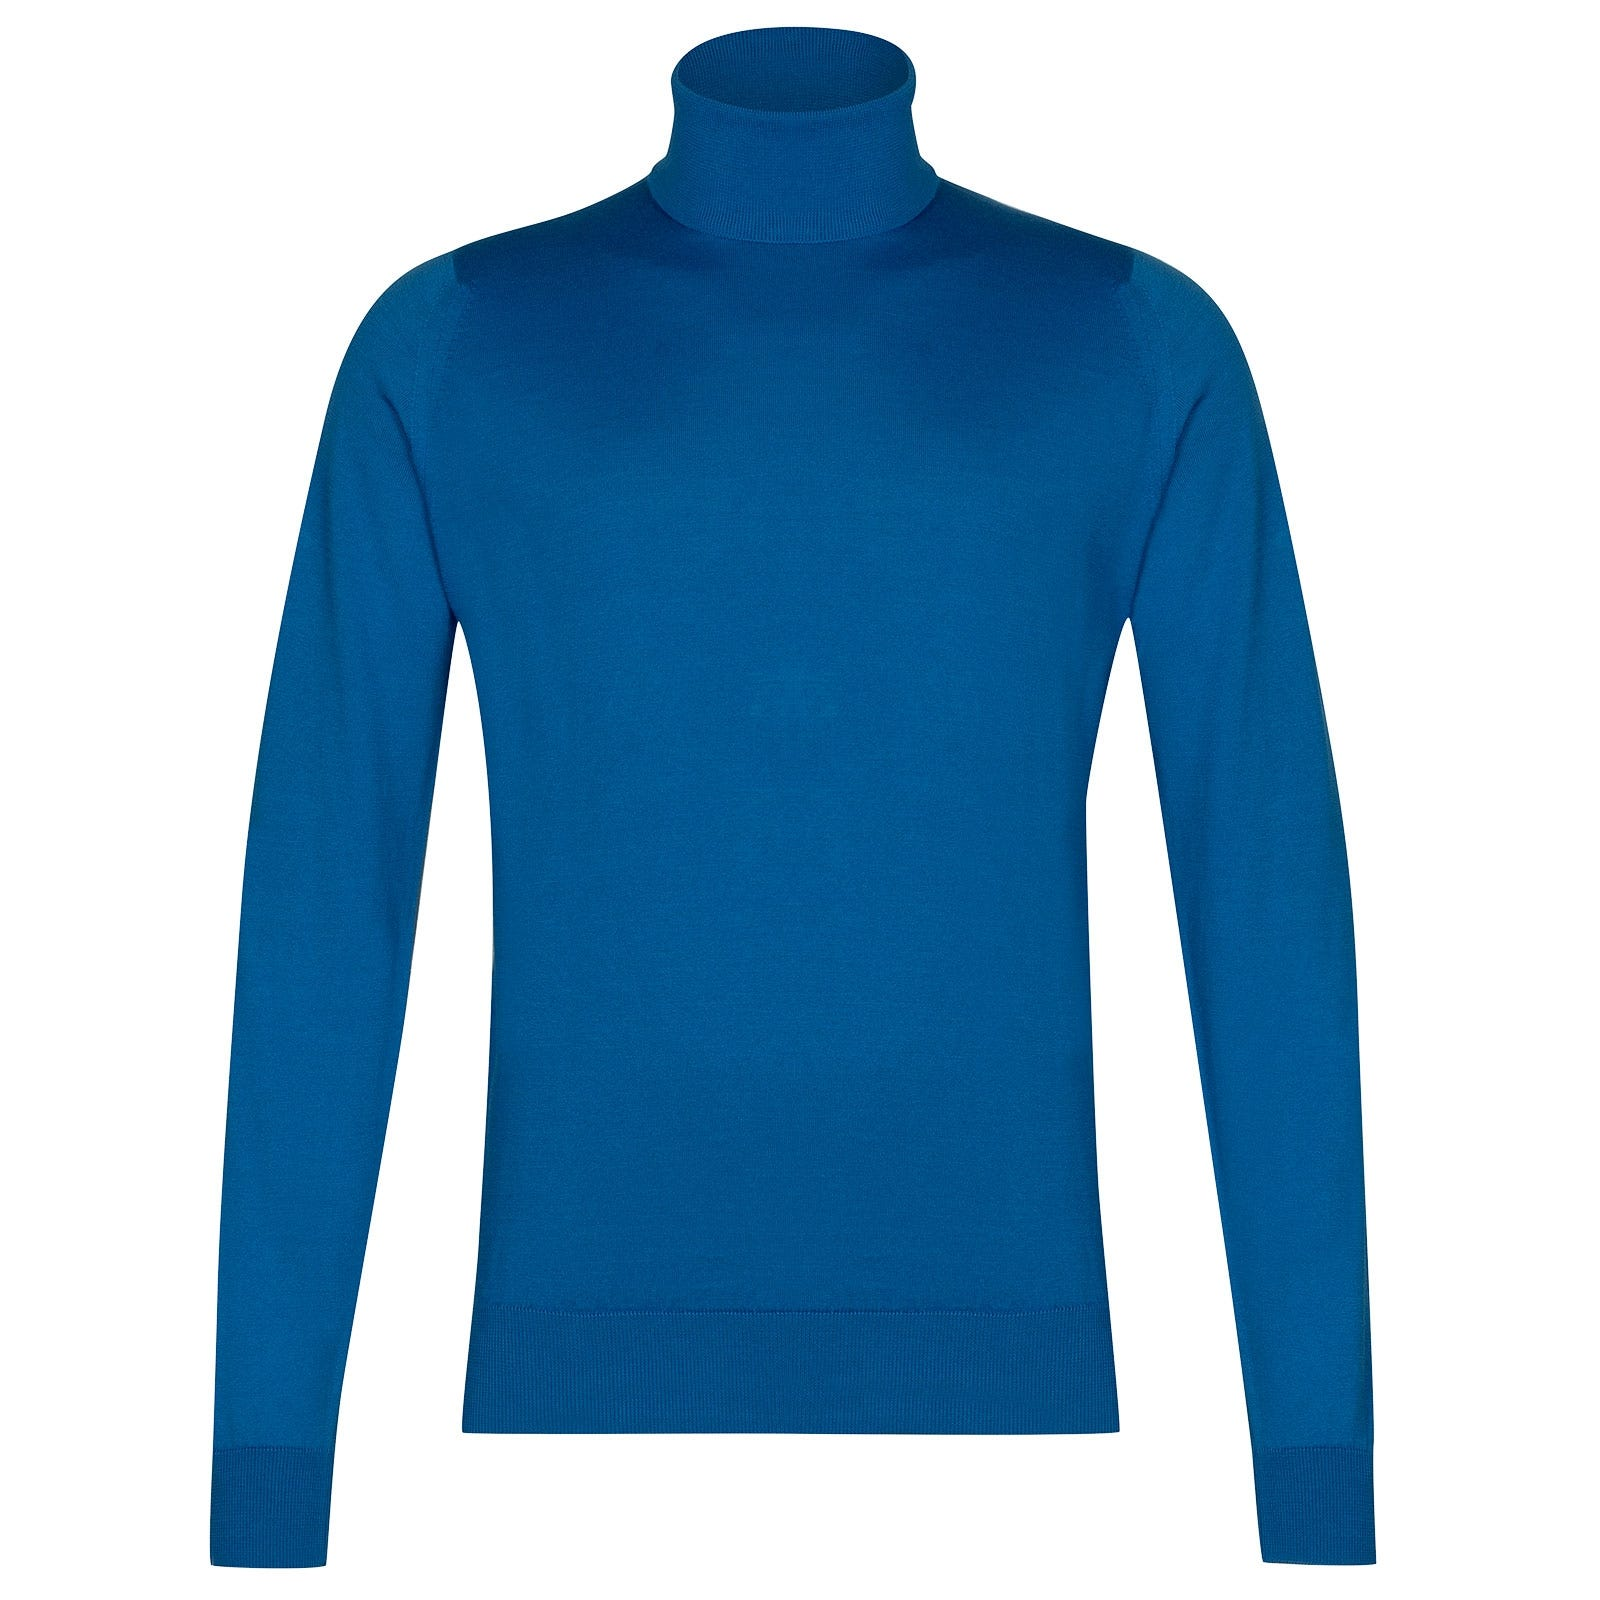 John Smedley Hawley in Statice Blue Pullover-XLG